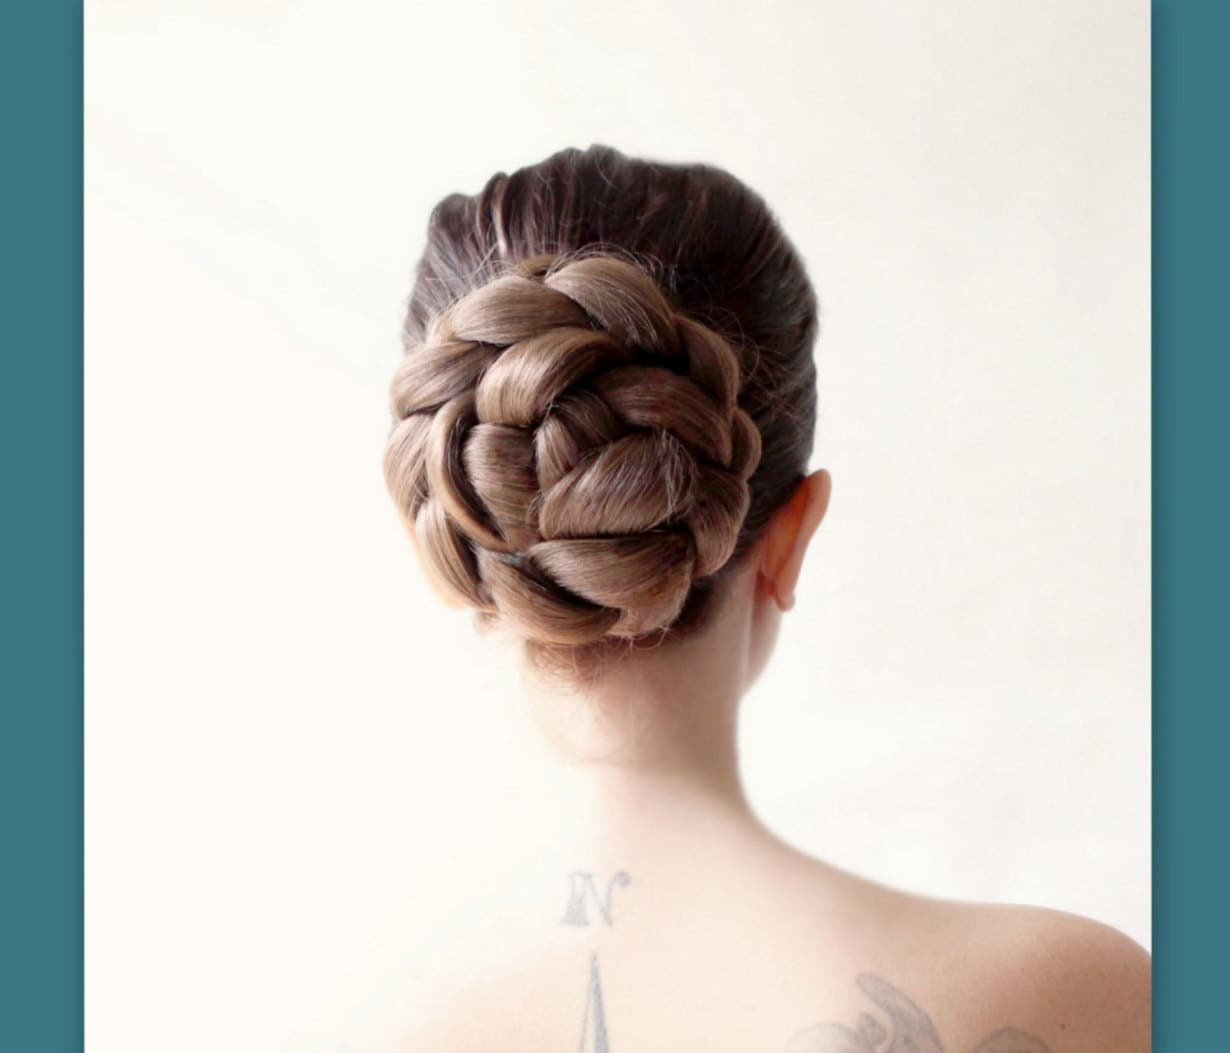 bridal hair wedding hairpiece ballet bun cover hair style